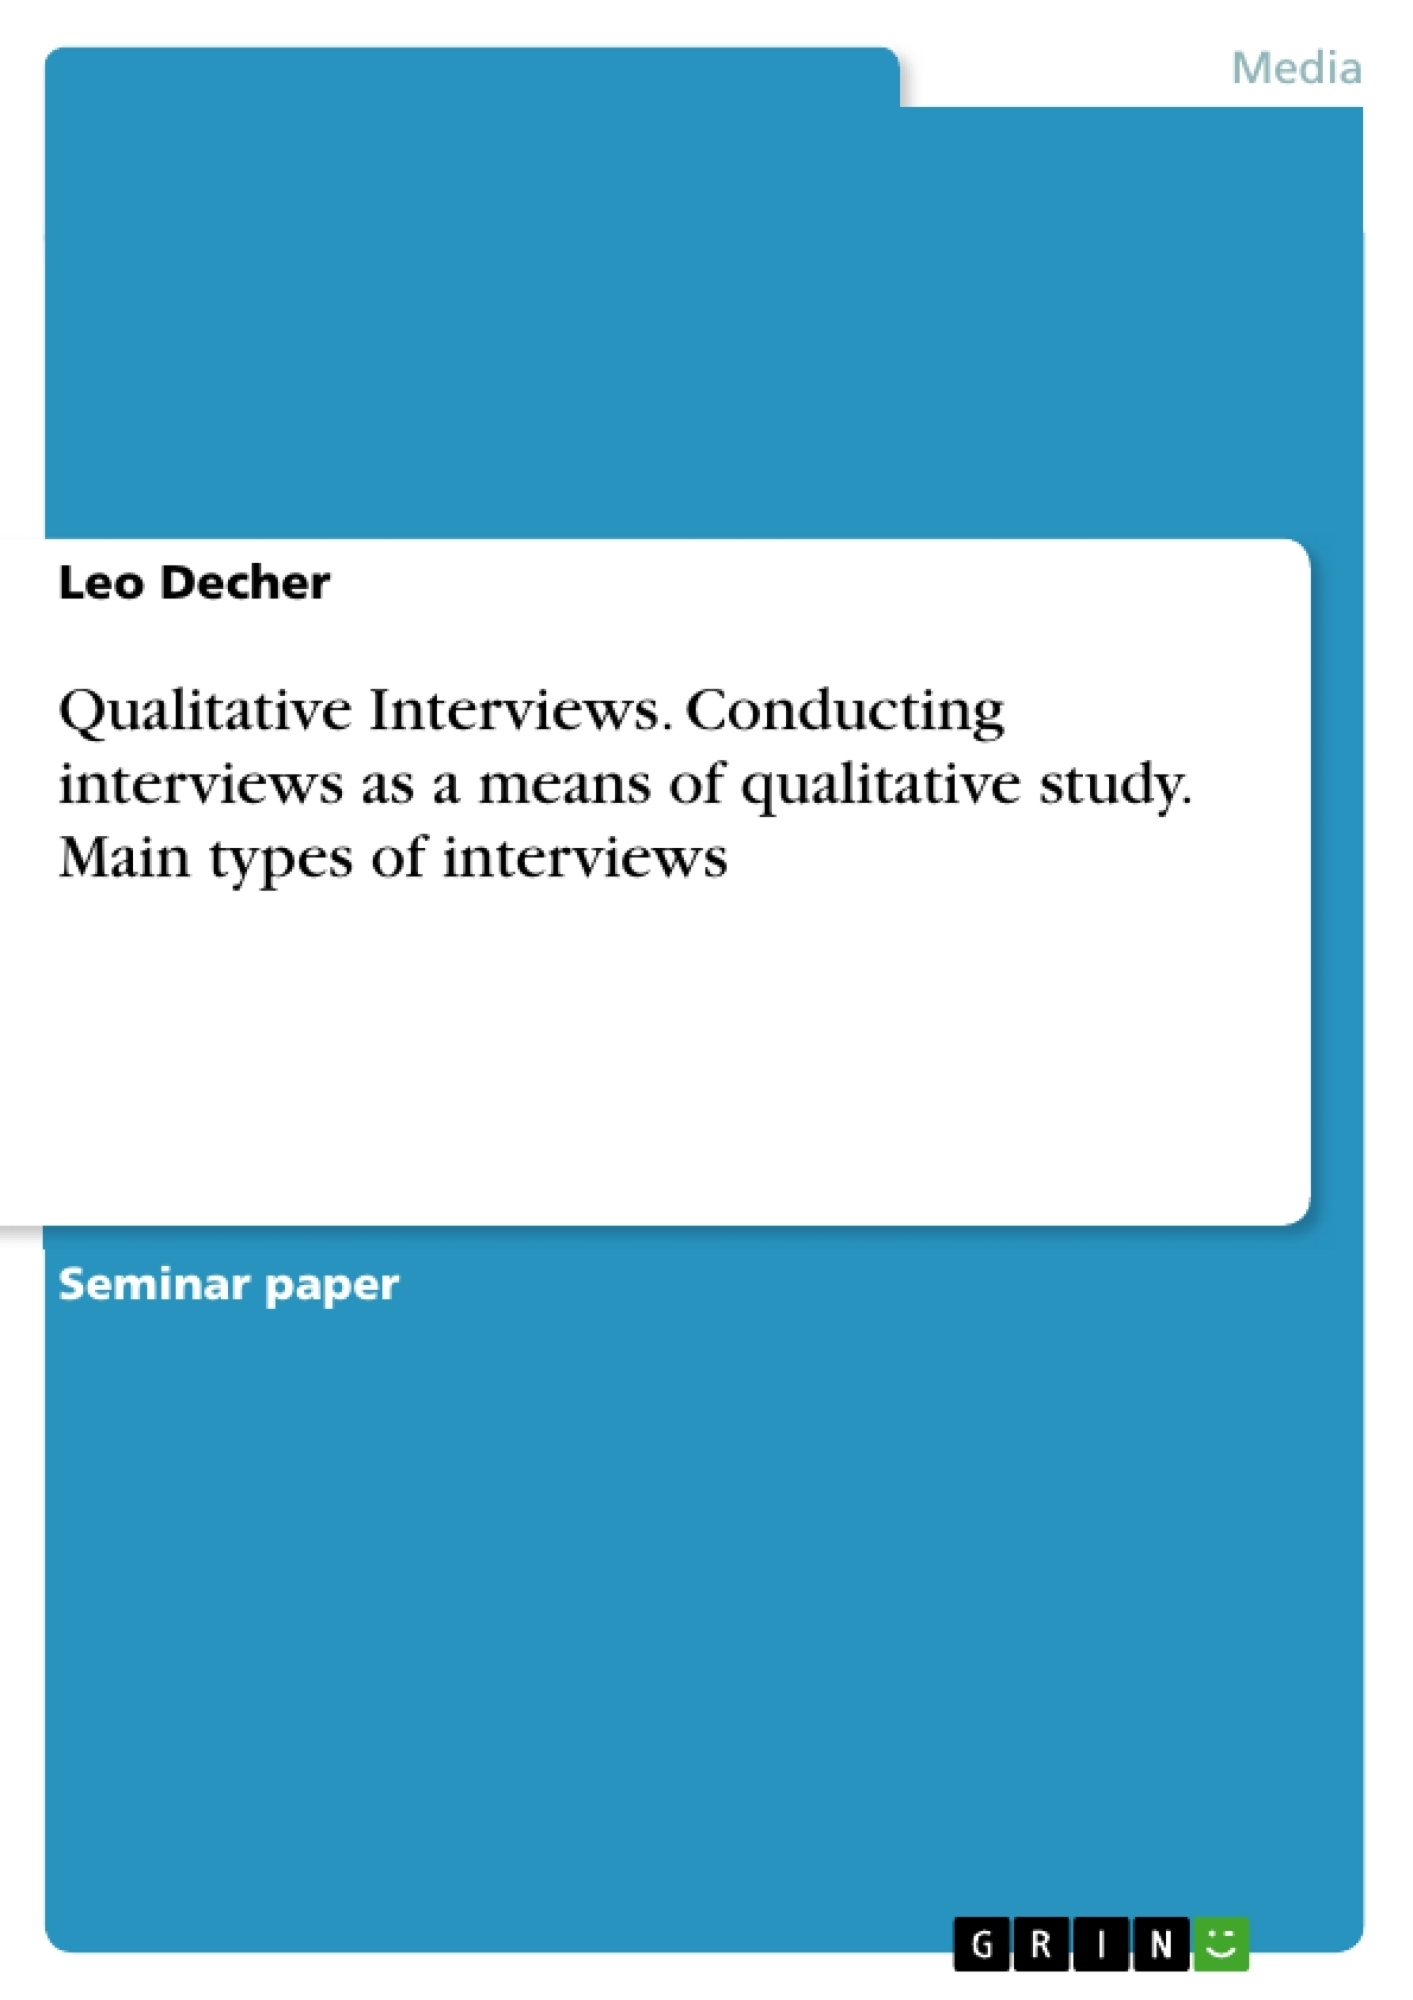 Title: Qualitative Interviews. Conducting interviews as a means of qualitative study. Main types of interviews